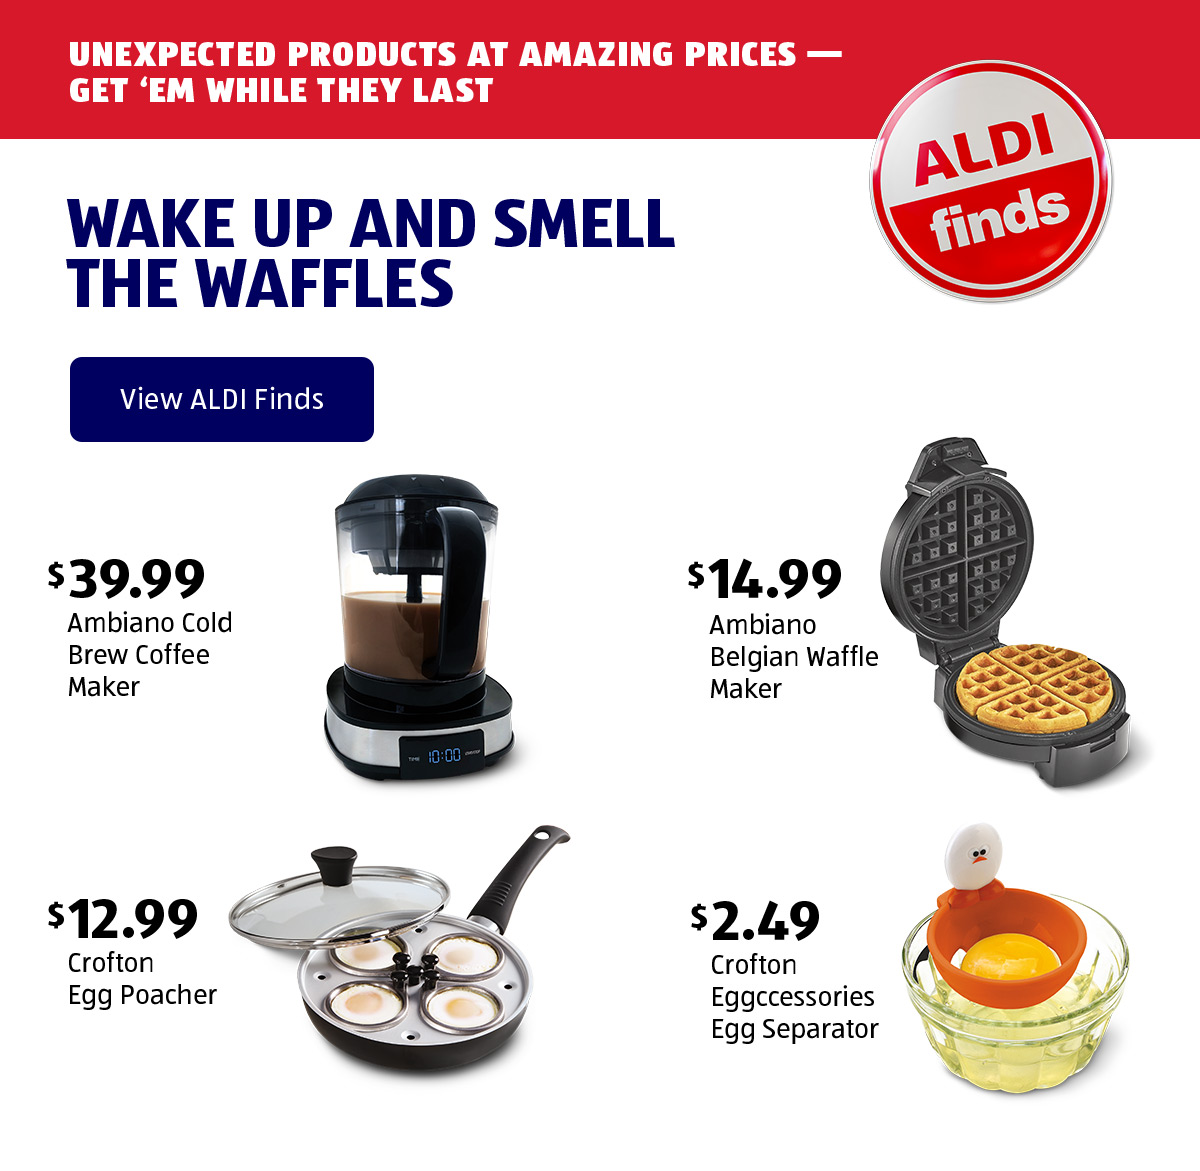 Wake Up And Smell The Waffles. View ALDI Finds.